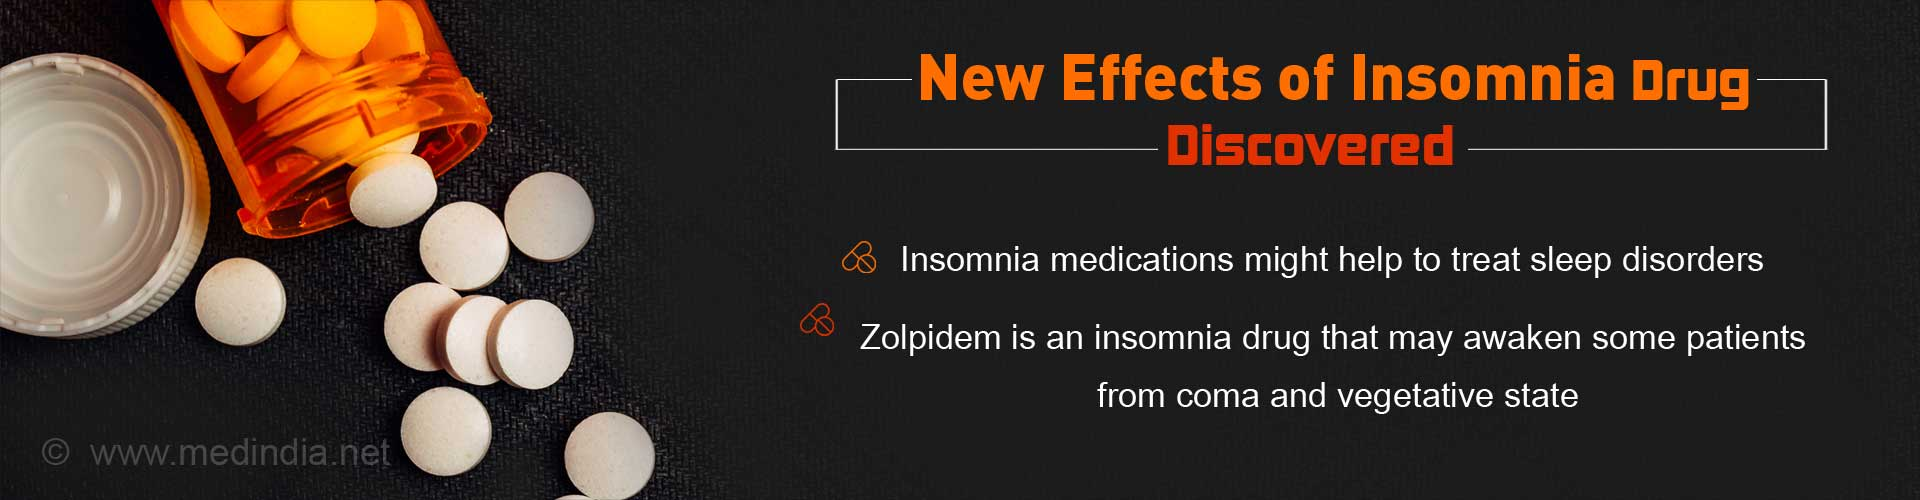 Zolpidem Drug: Surprising Effects of Insomnia Medication